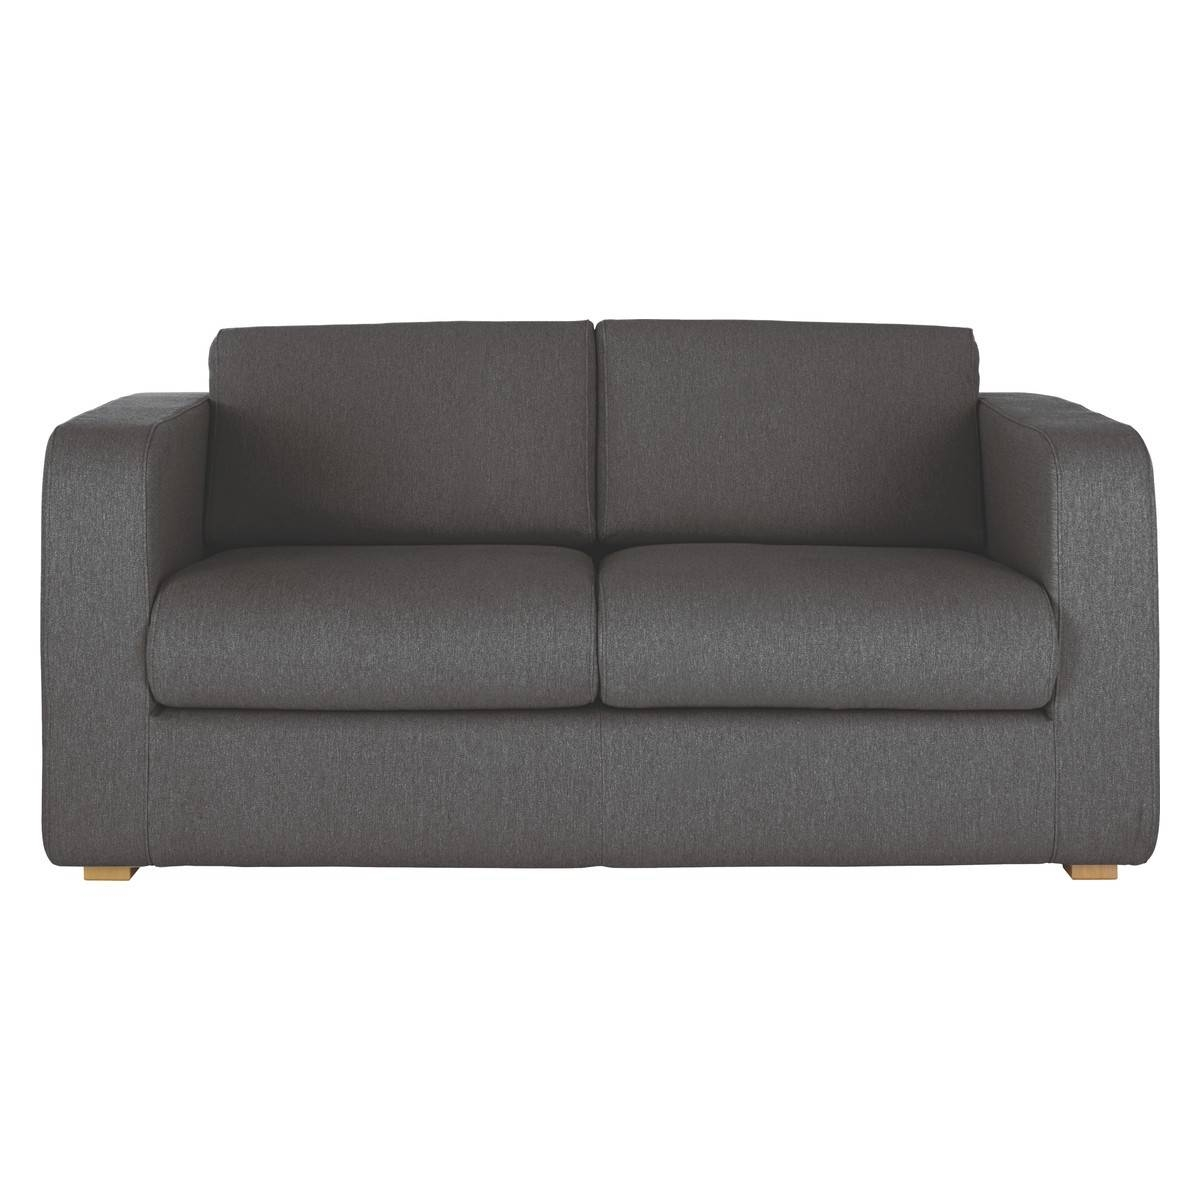 Porto Charcoal Fabric 2 Seater Sofa Bed | Buy Now At Habitat Uk with 2 Seater Sofas (Image 20 of 30)